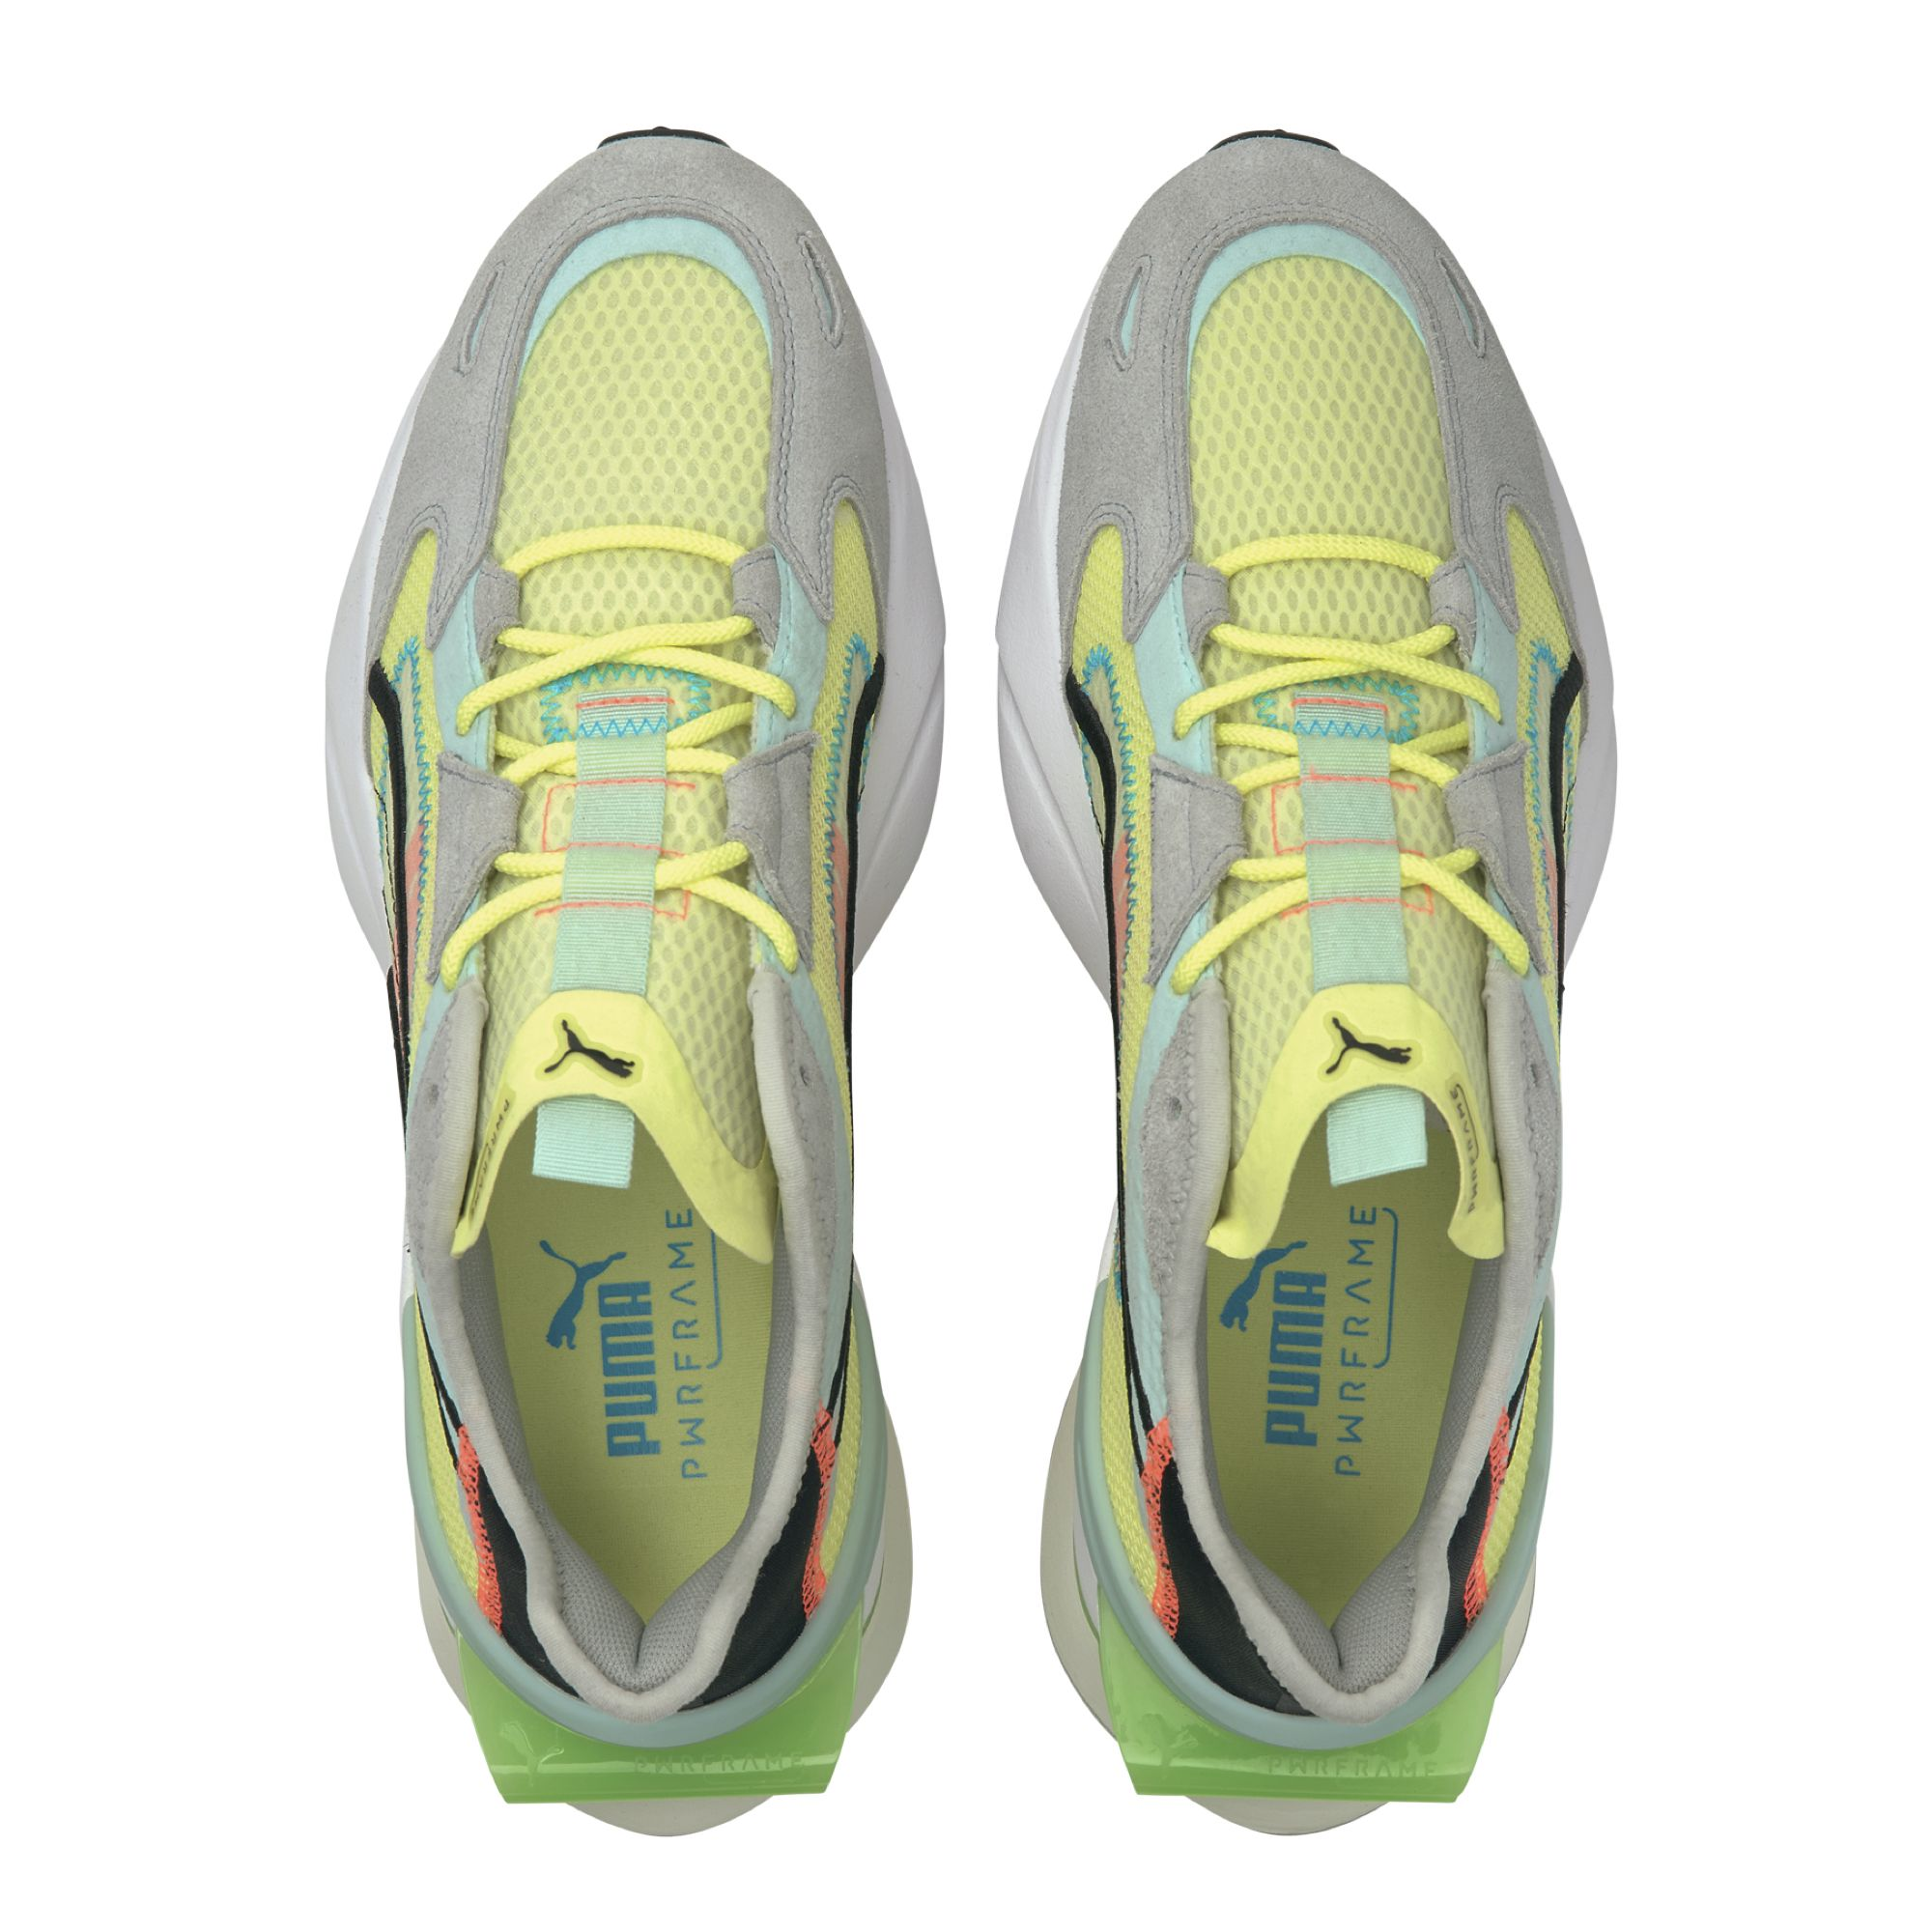 Puma op1 pwrframe abstract yellow